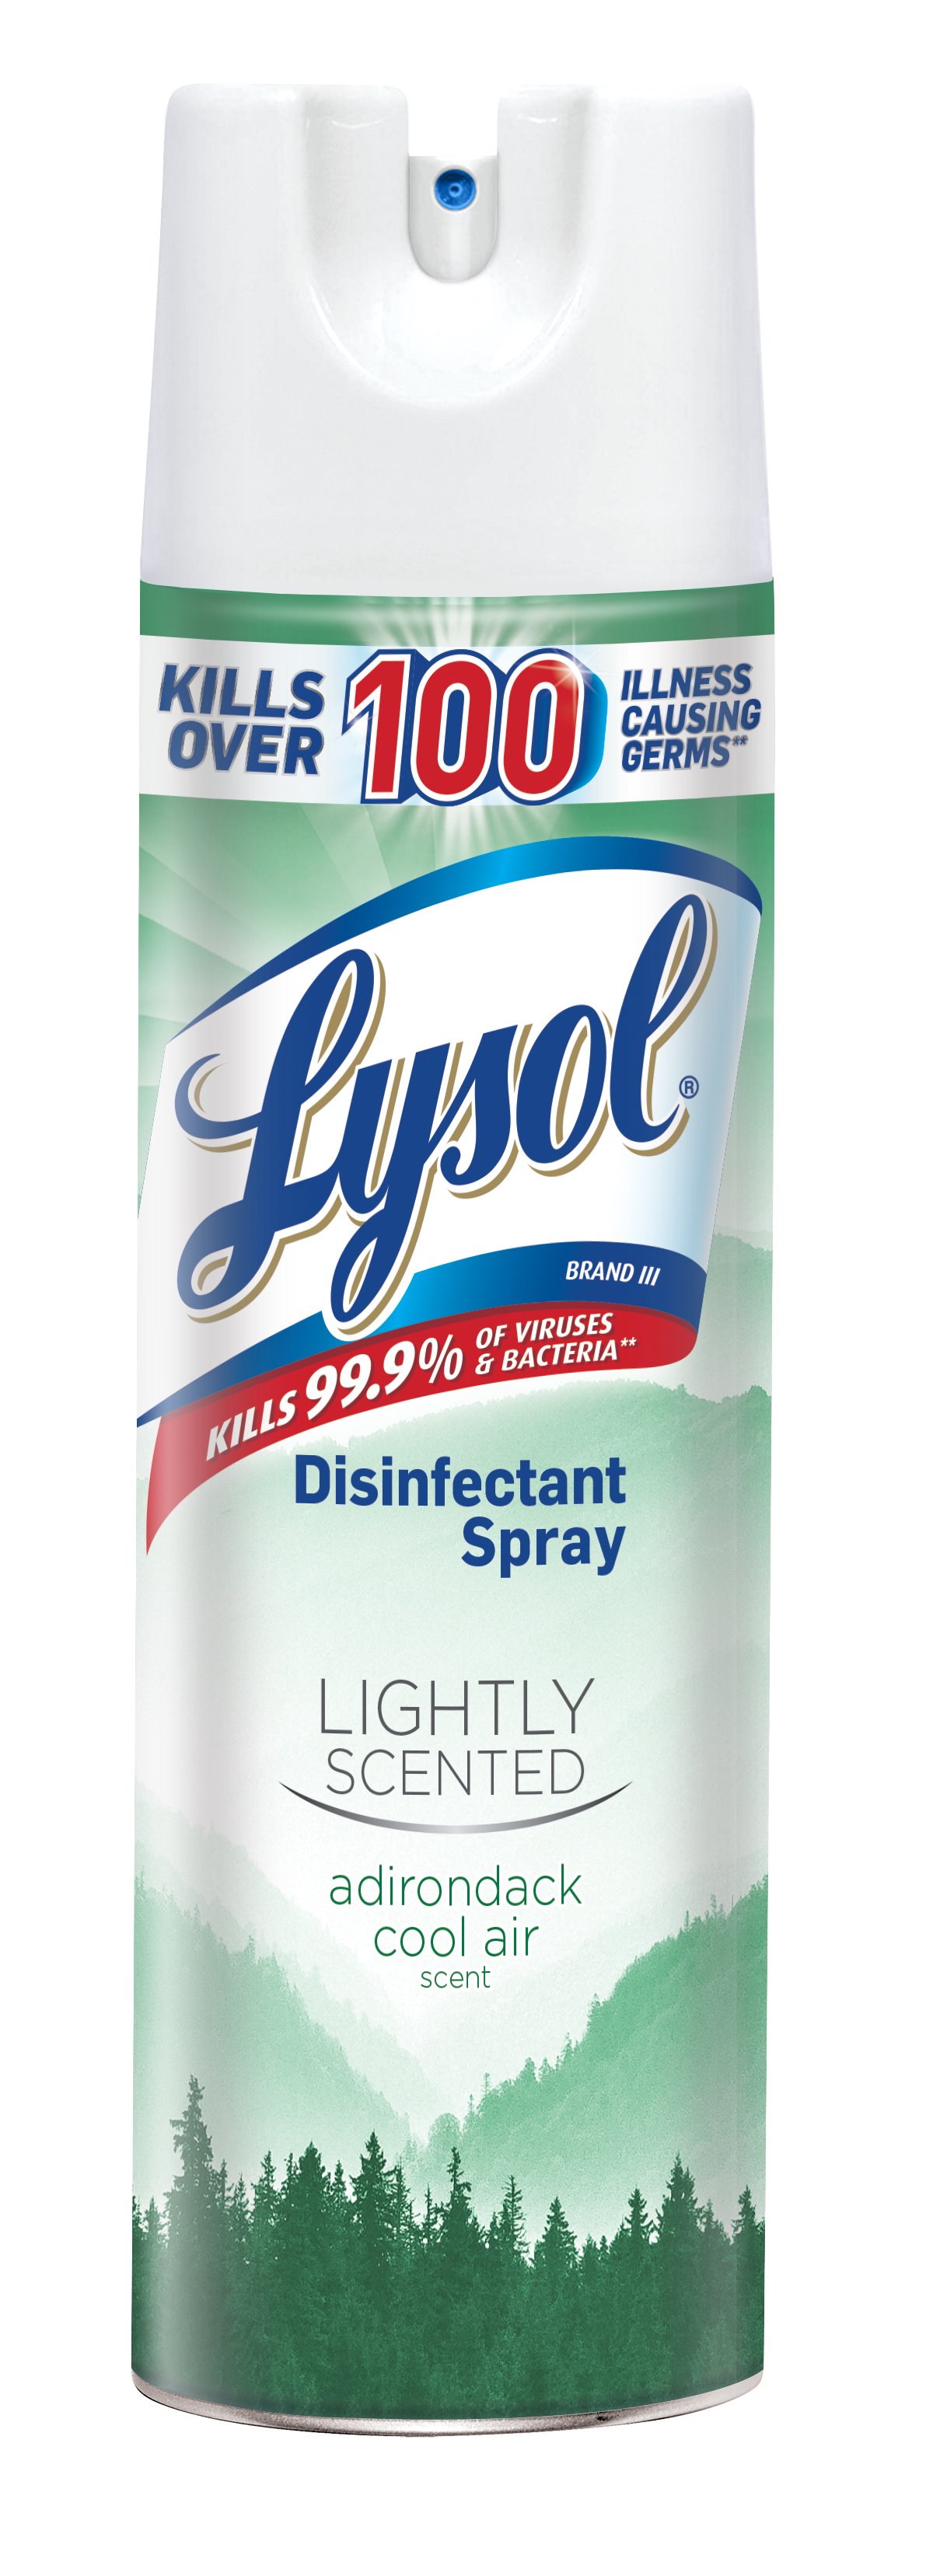 LYSOL® Disinfectant Spray - Lightly Scented Adirondack Cool Air